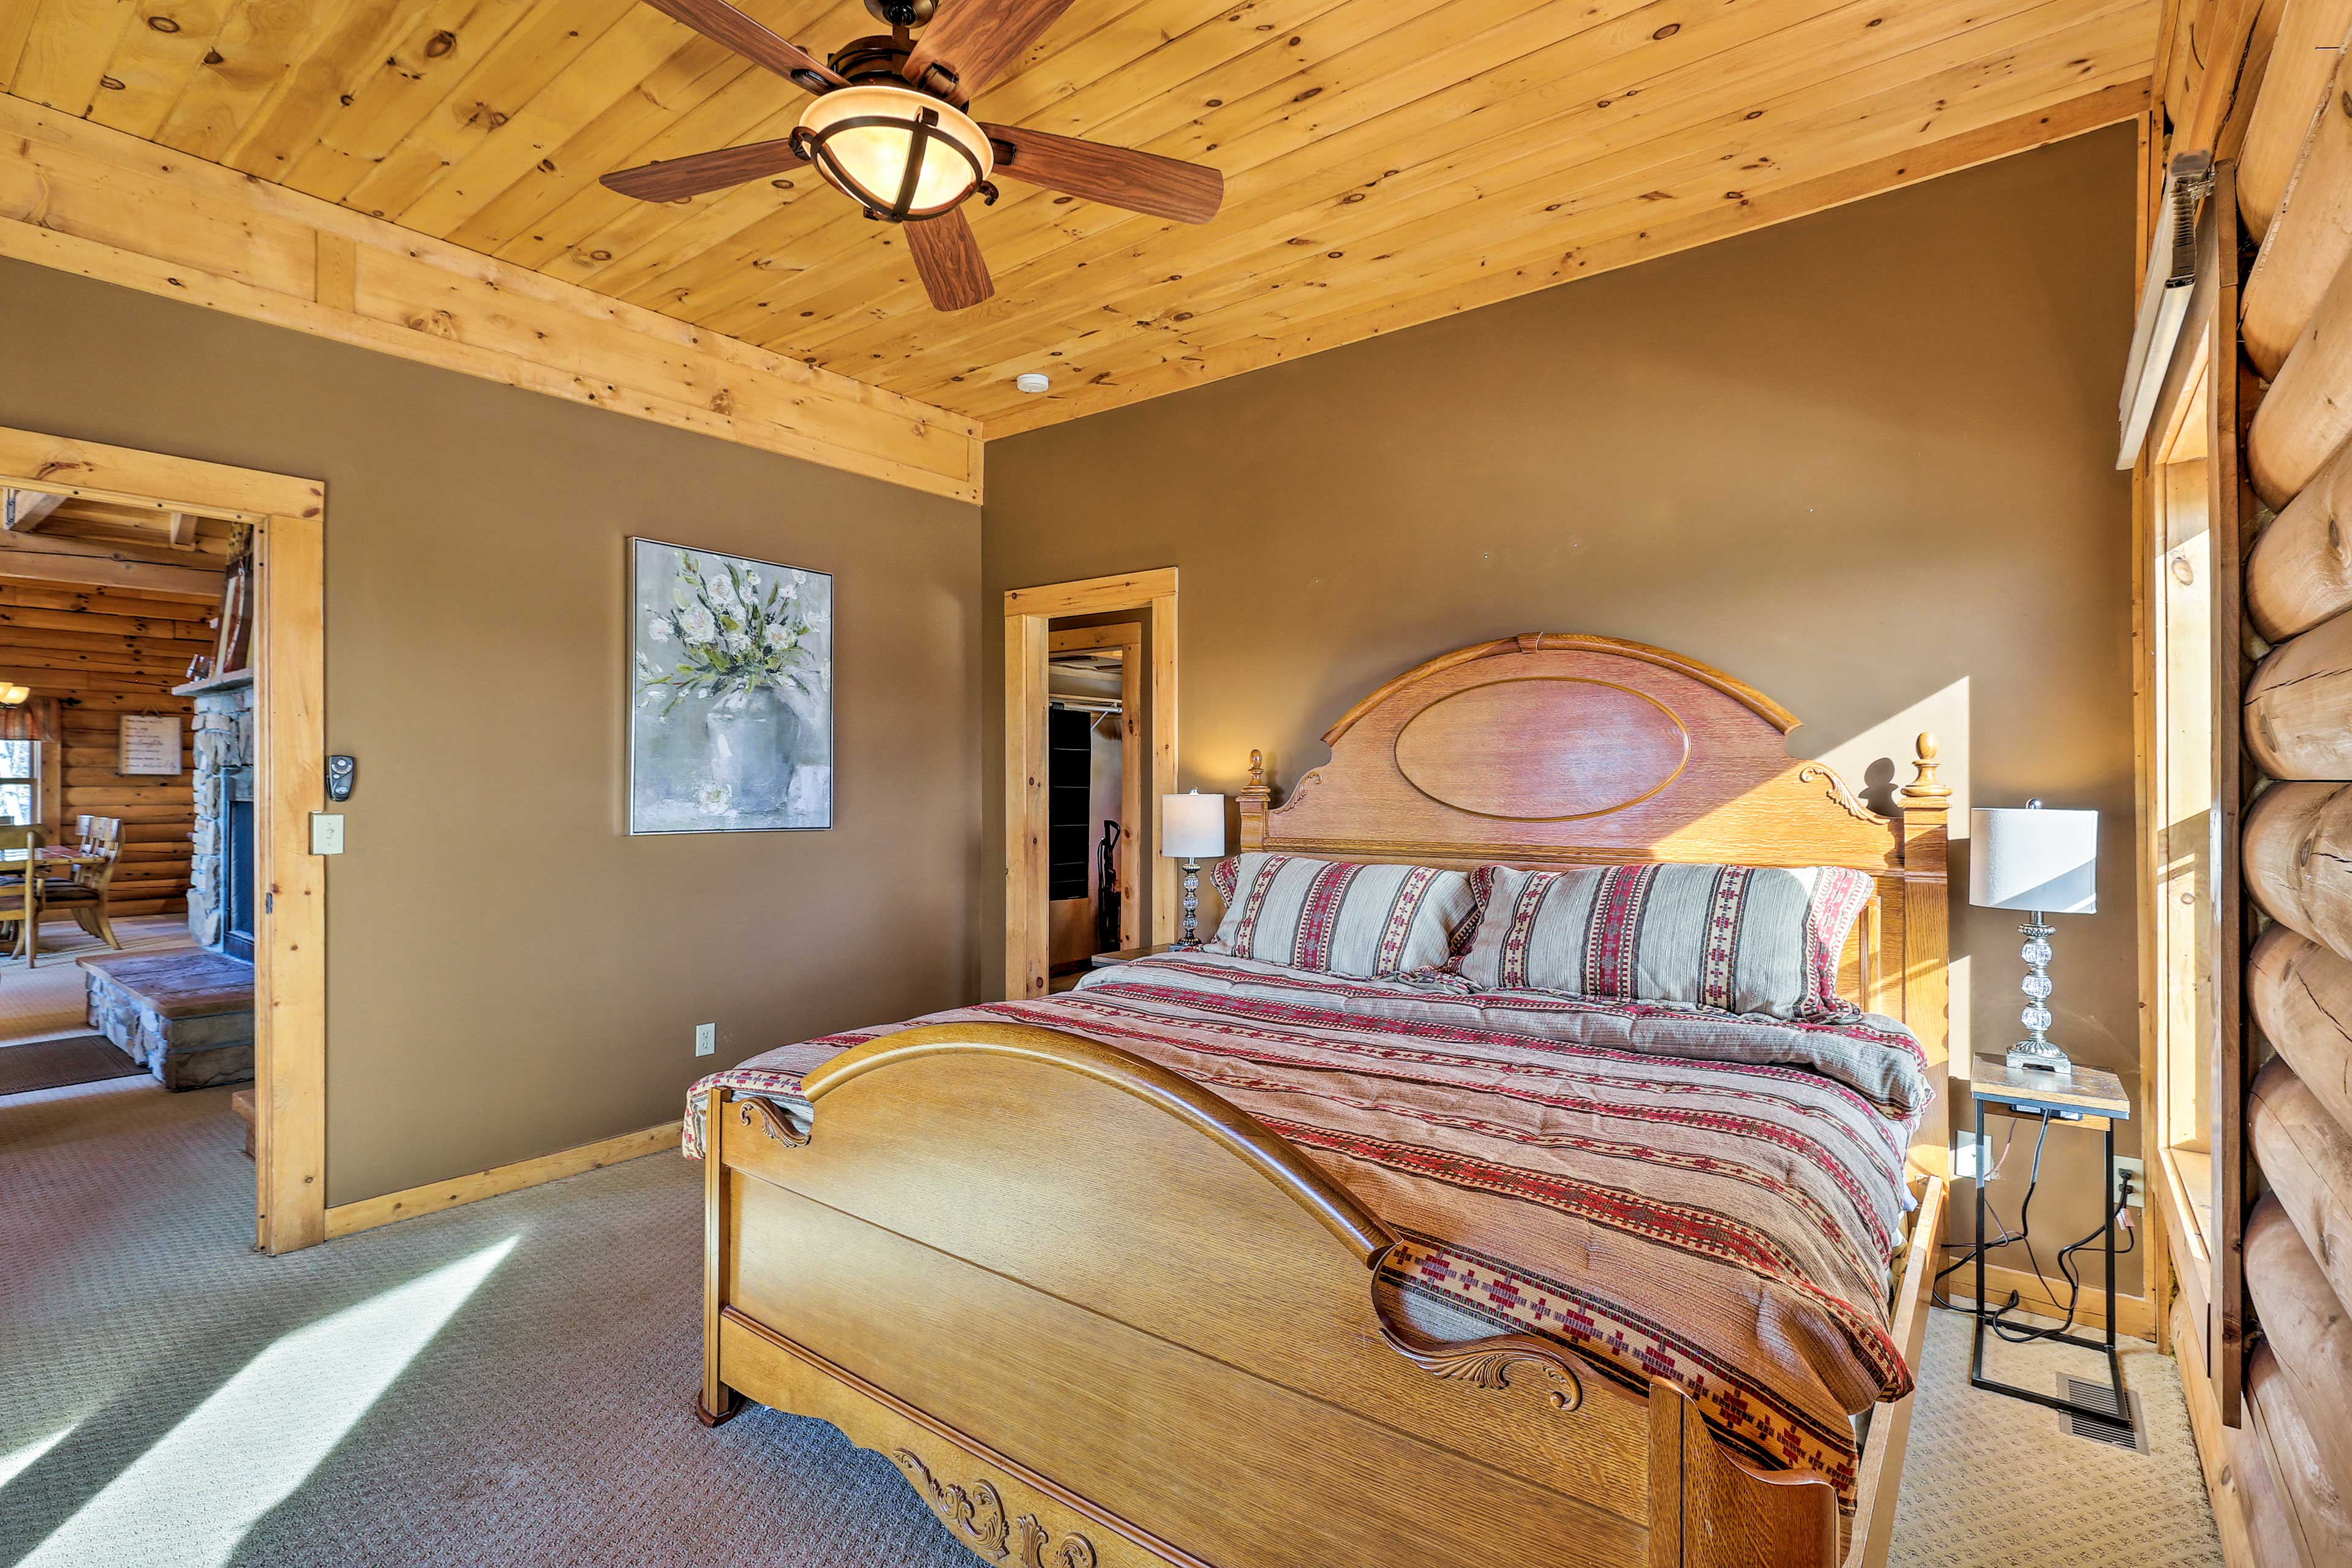 Sleep soundly in this cozy room.